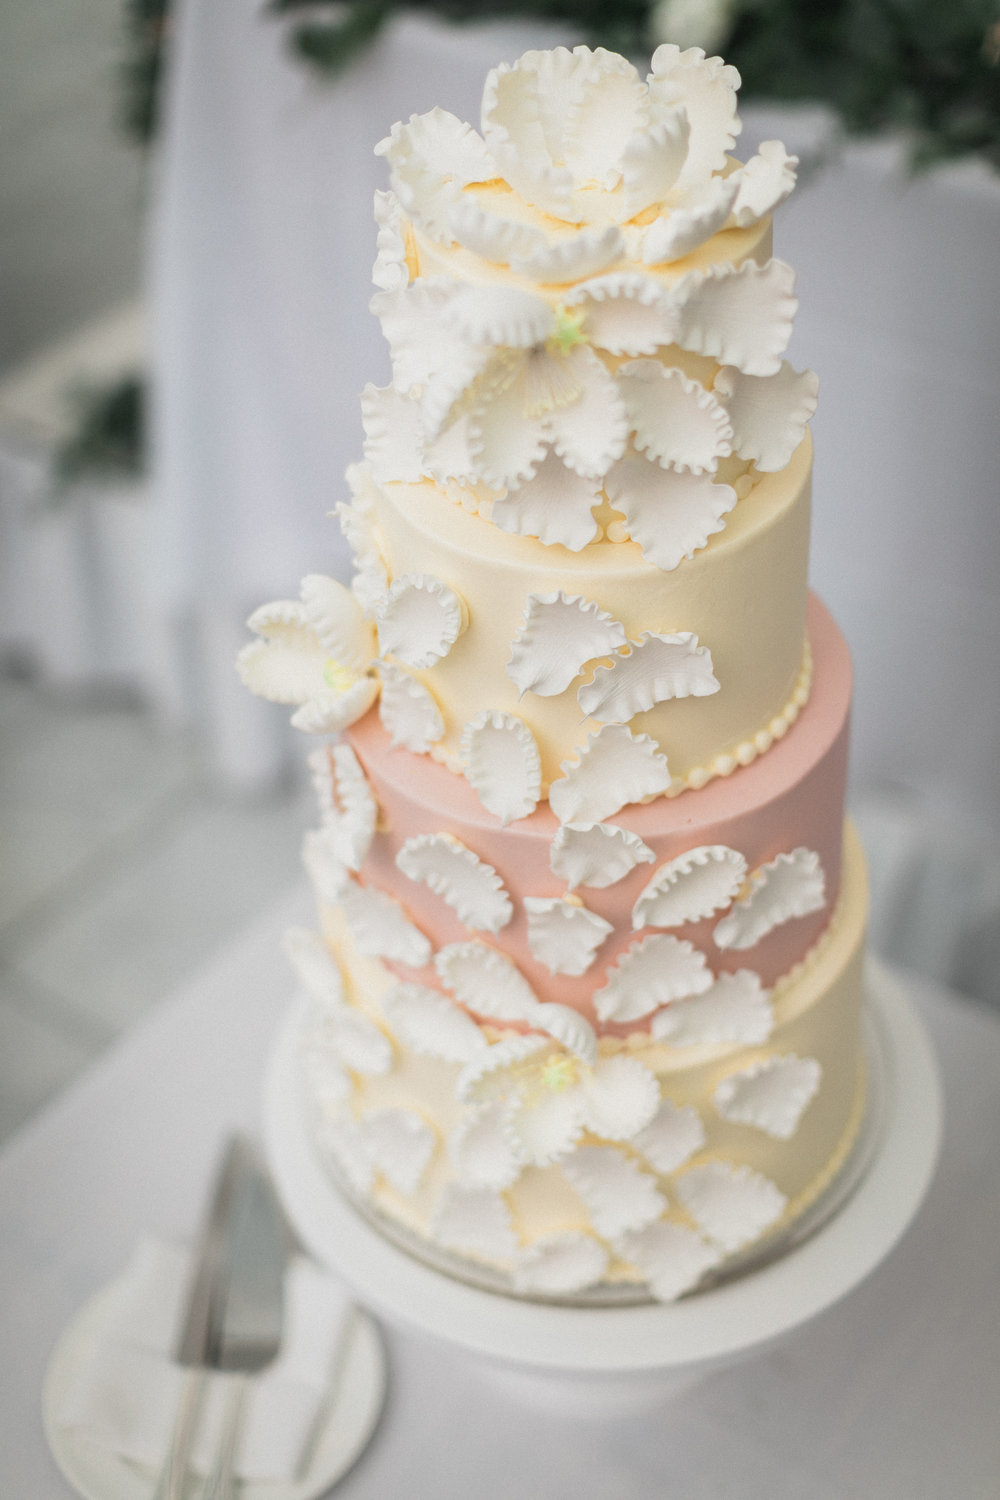 Wisconsin_Wedding_acowsay_Uttke_Photography_Cake.jpg